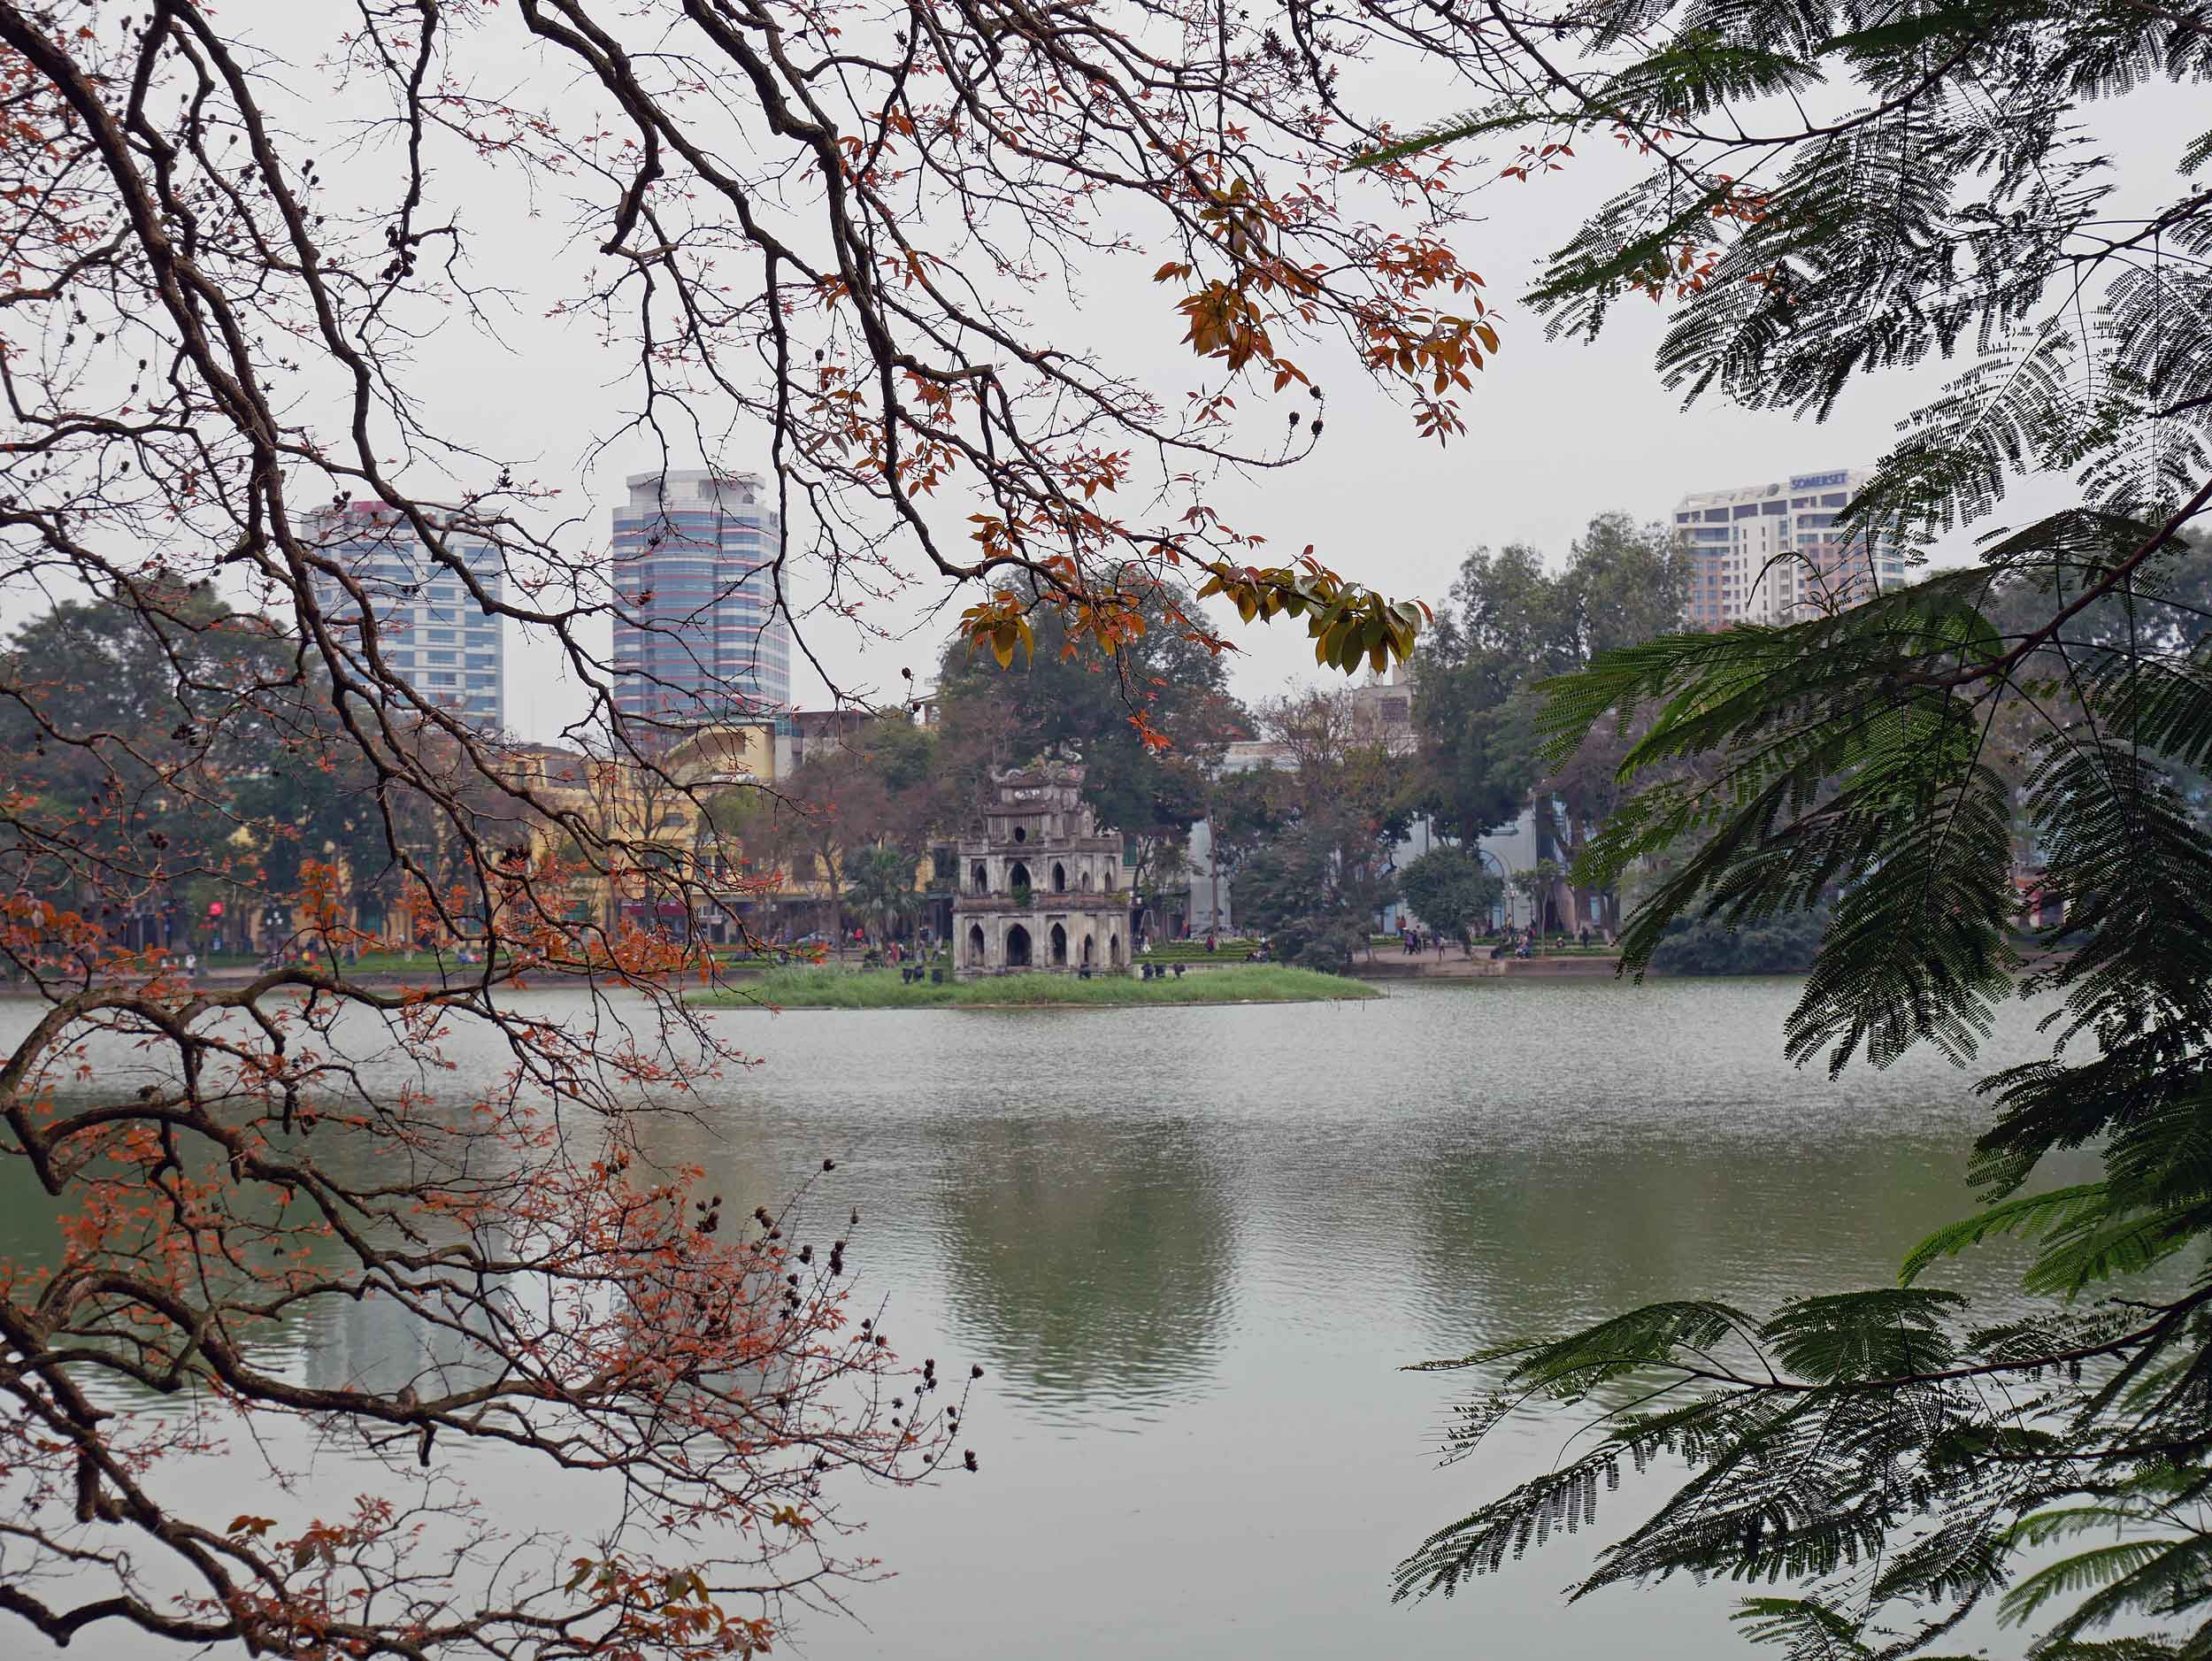 Hanoi features an Old Quarter, with narrow streets overloaded with myriad motorbikes and vendors.In the middle of this frenetic area,we found peaceful Hoan Kiem Lake (March 20).